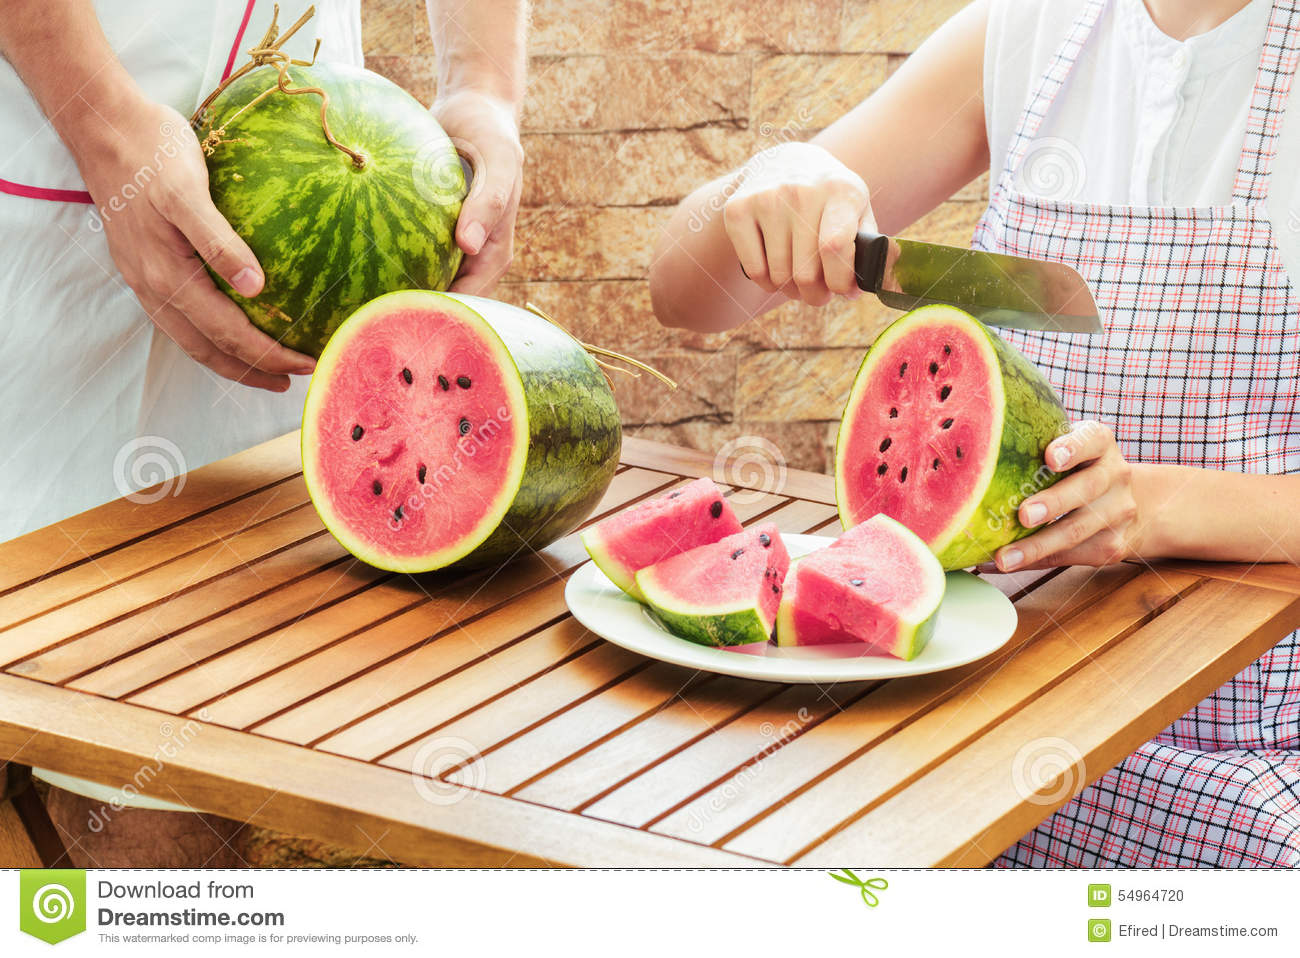 Young woman in apron slicing fresh ripe juicy watermelon